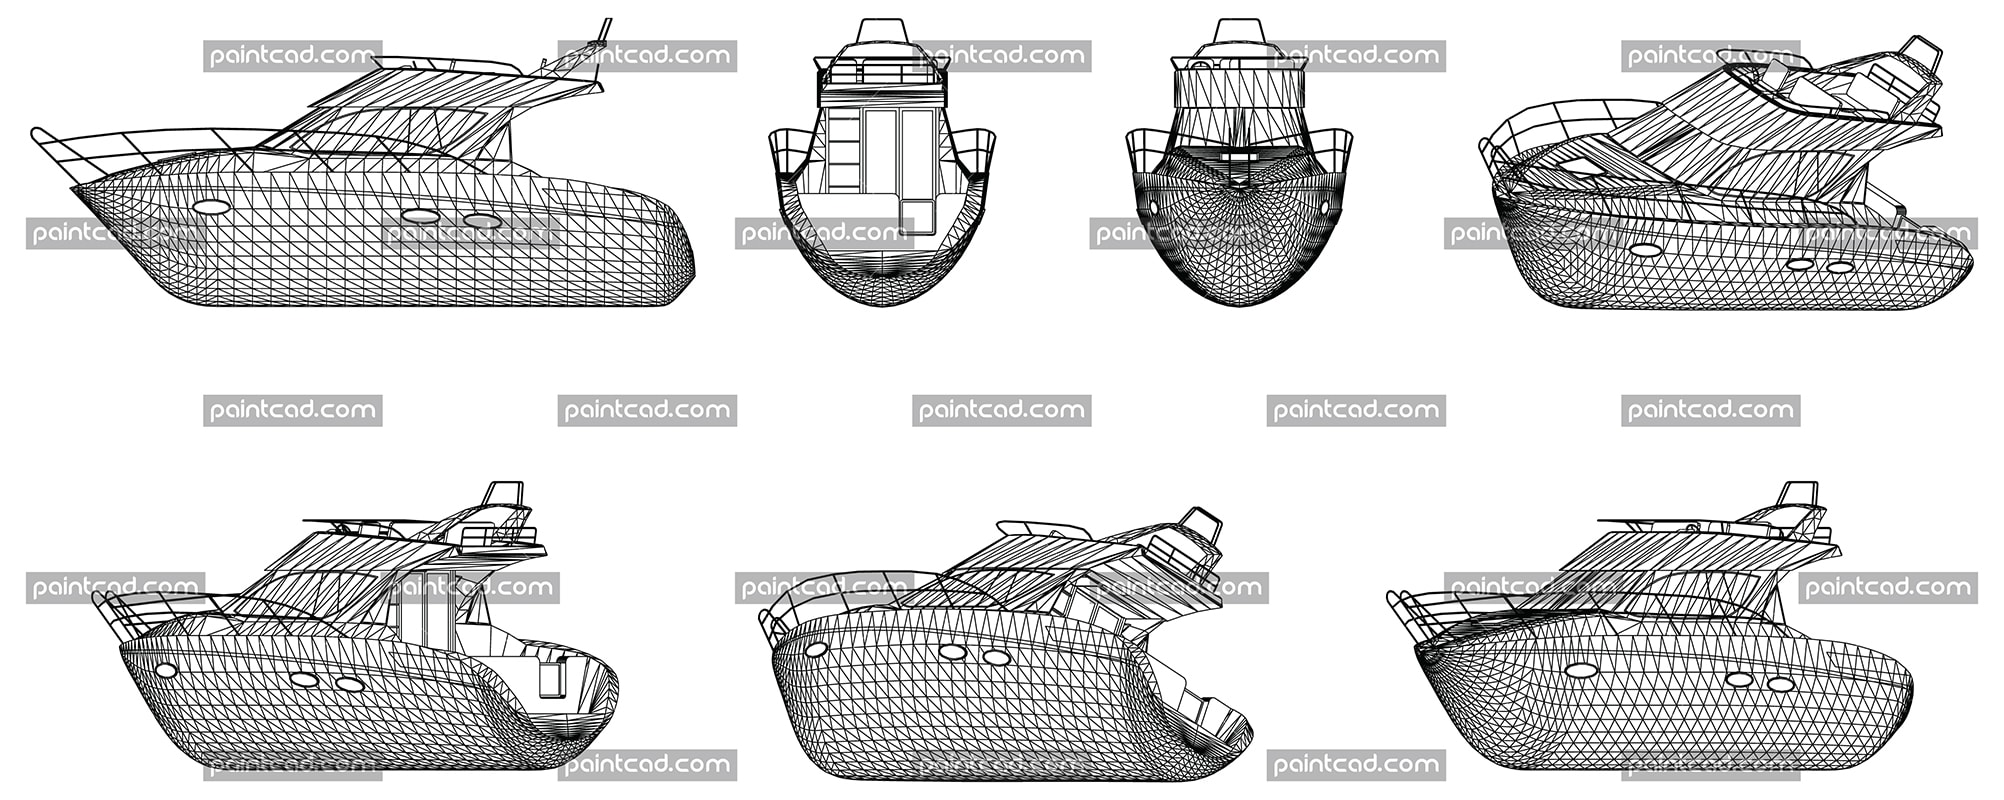 Wireframe design of modern high speed yacht - vector illustration